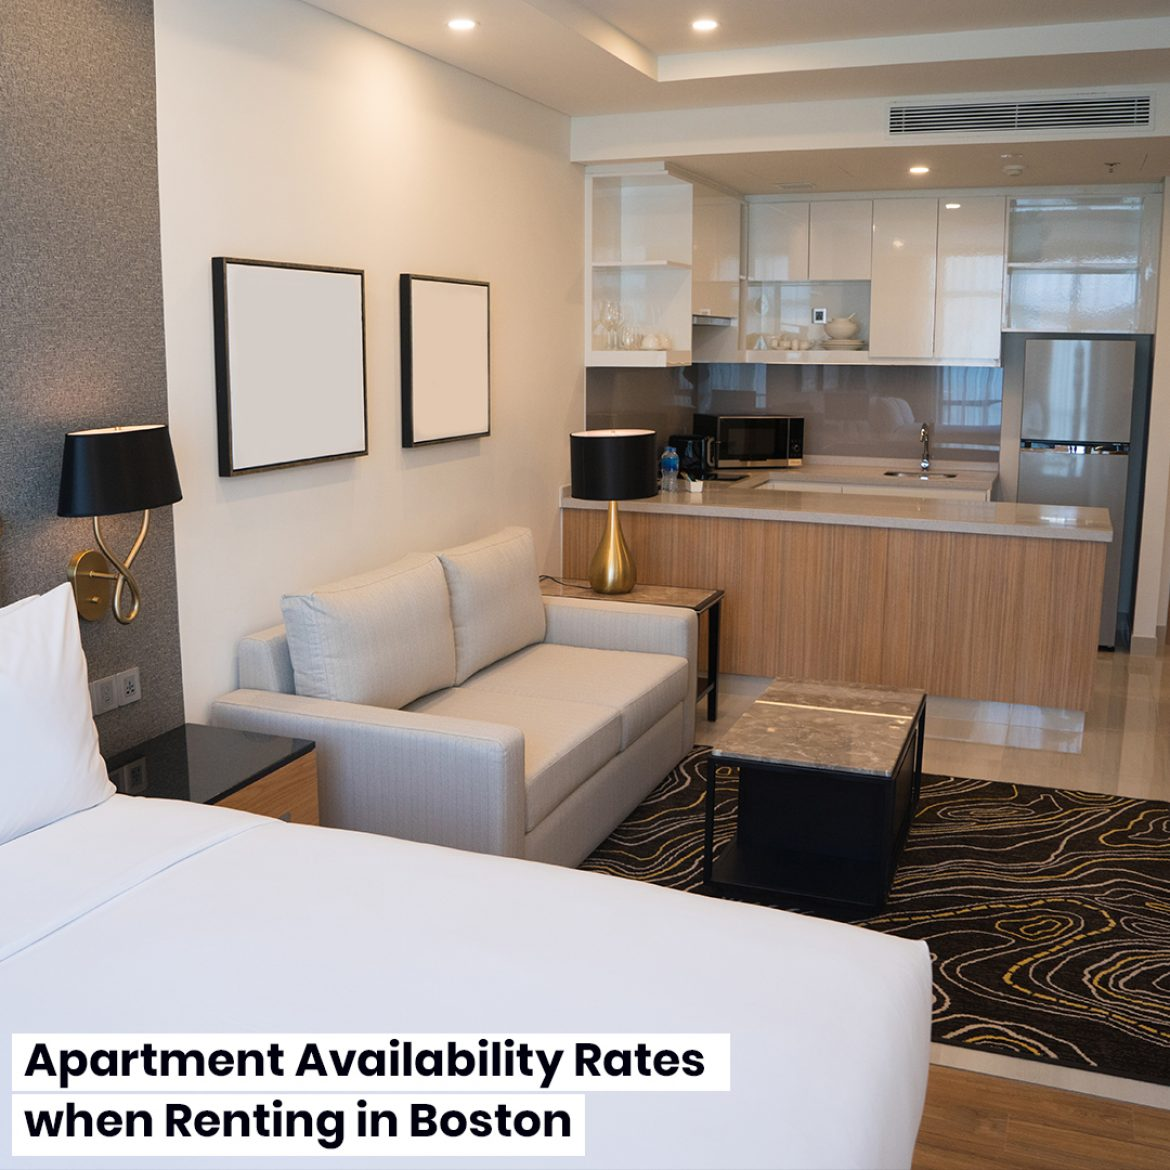 Apartment Availability Rates when Renting in Boston